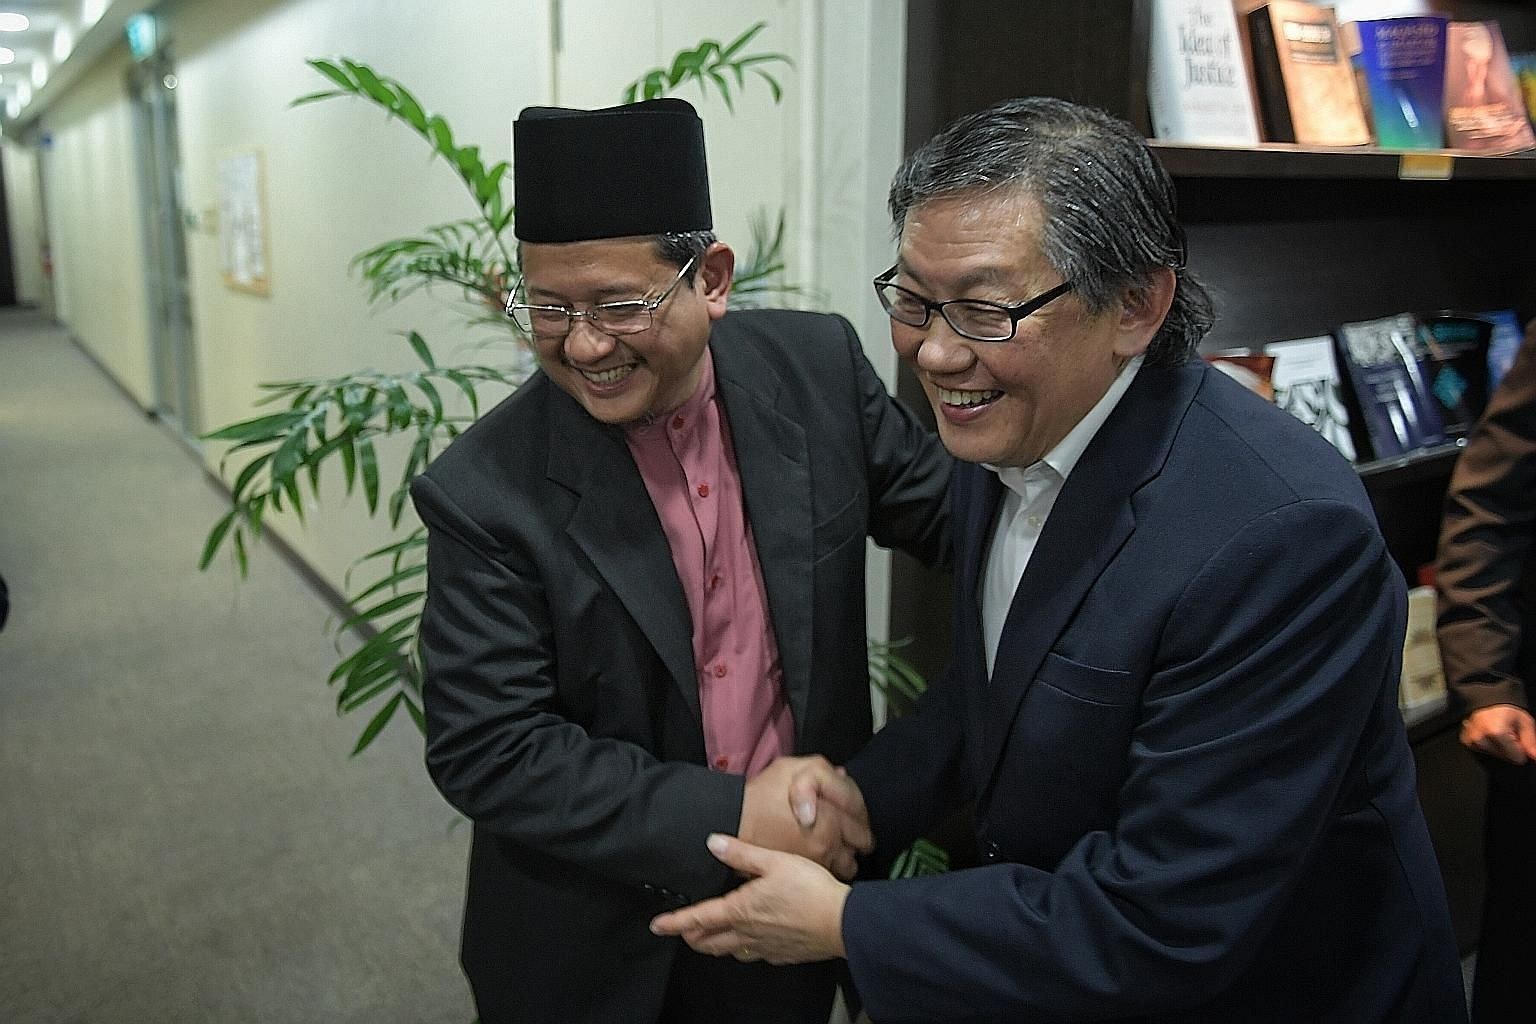 Mufti Mohd Fatris Bakaram and Cornerstone Community Church senior pastor Yang Tuck Yoong at the Singapore Islamic Hub last night. At the meeting with Muslim community leaders, Pastor Yang apologised for the comments made by Mr Lou Engle.